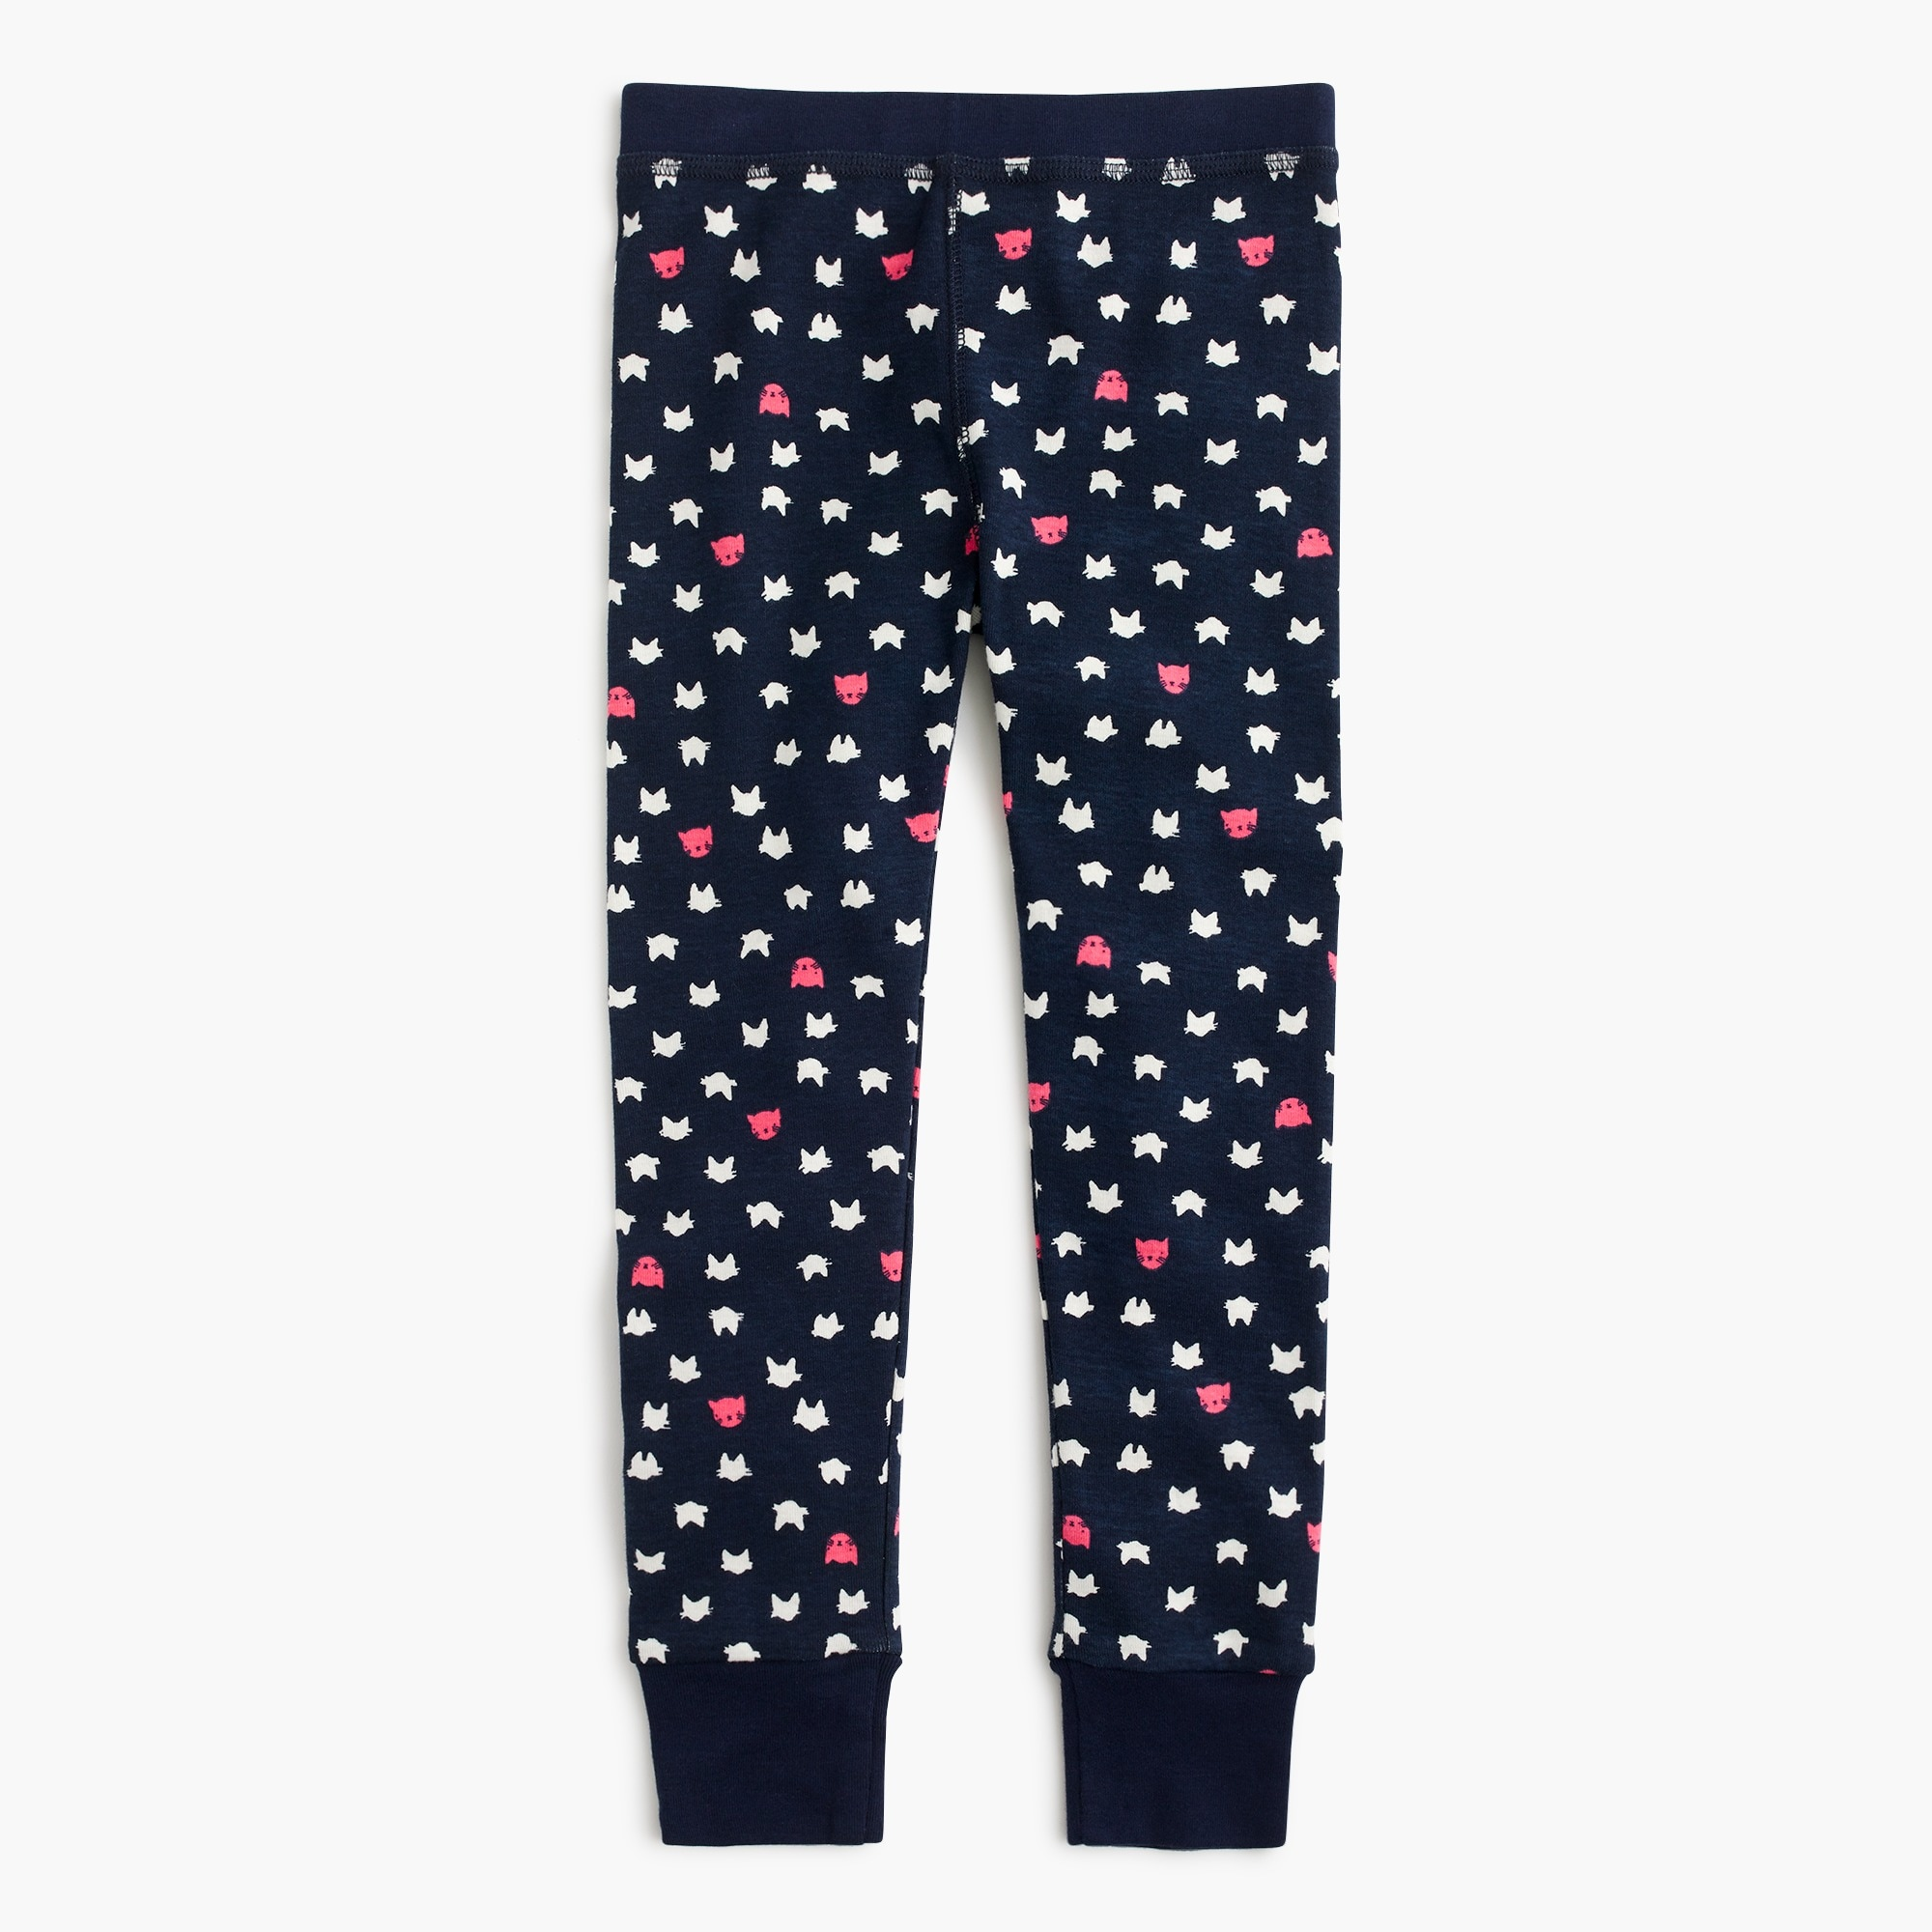 Girls' pajama set in cat print